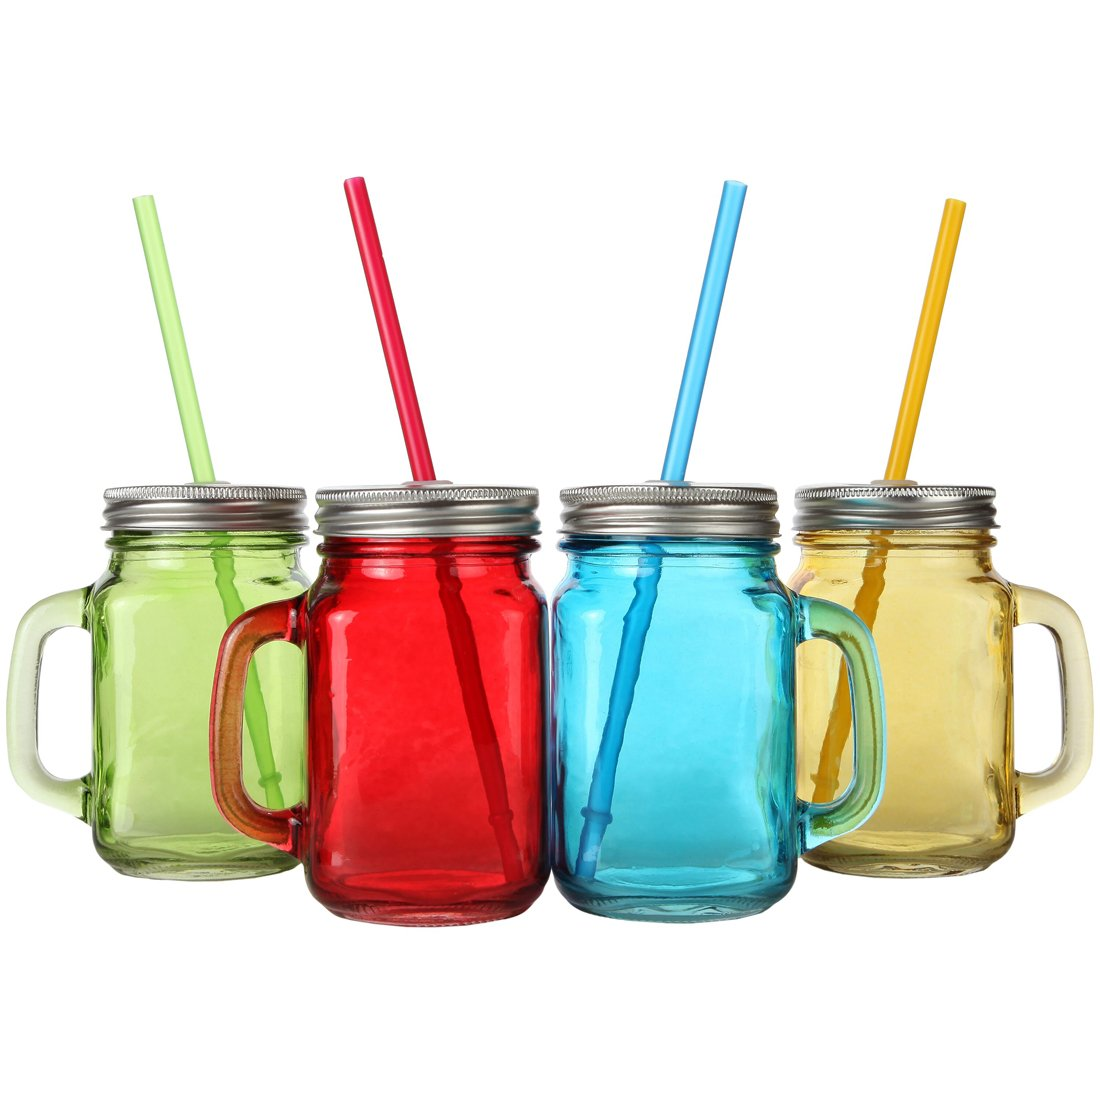 Lily's Home Old Fashioned Mason Jar Mugs with Handles, Tin Lids and Matching Reusable Plastic Straws, Assorted Solid Colors (16 oz. Each, Set of 4) by Lily's Home